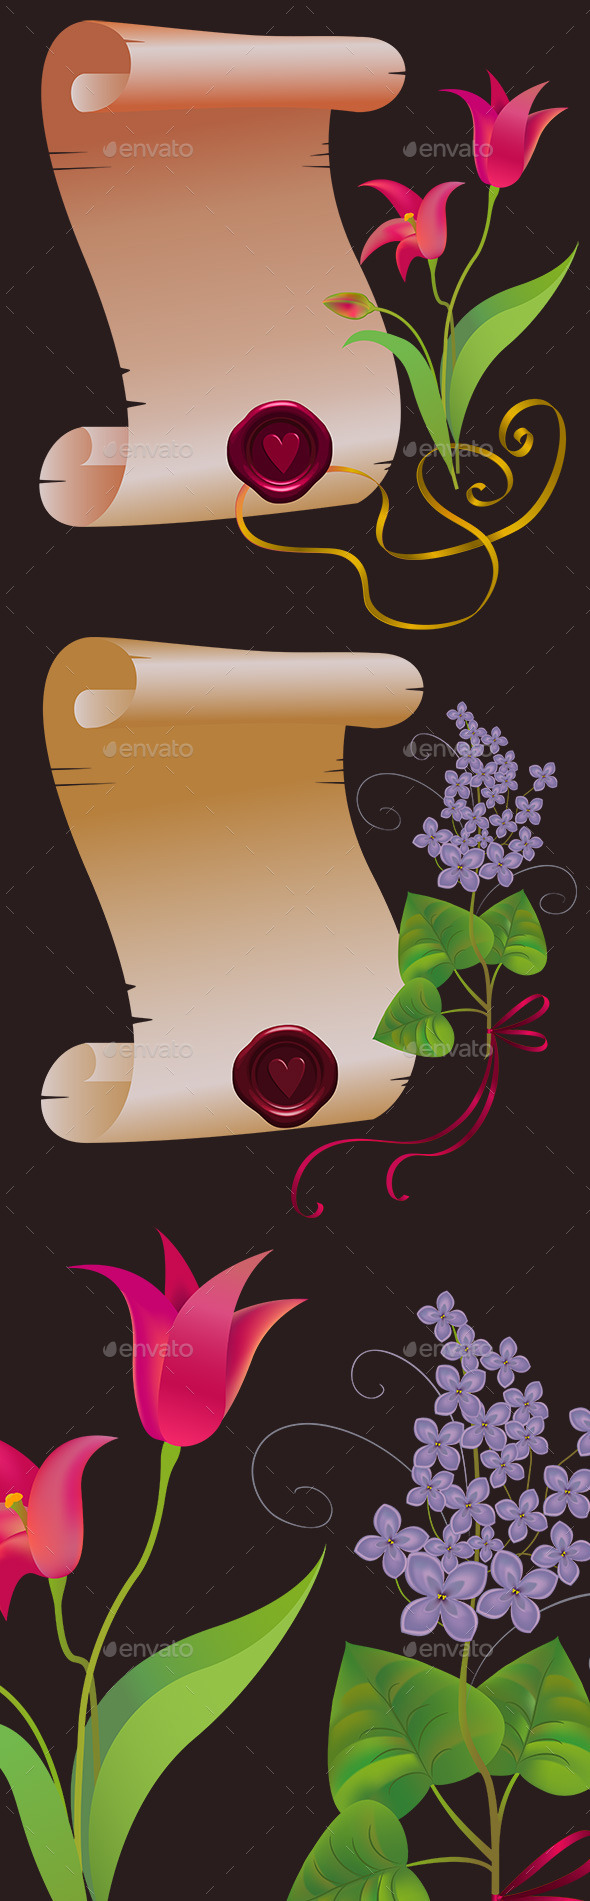 GraphicRiver Two Vintage Scrolls with Flowers 10561713